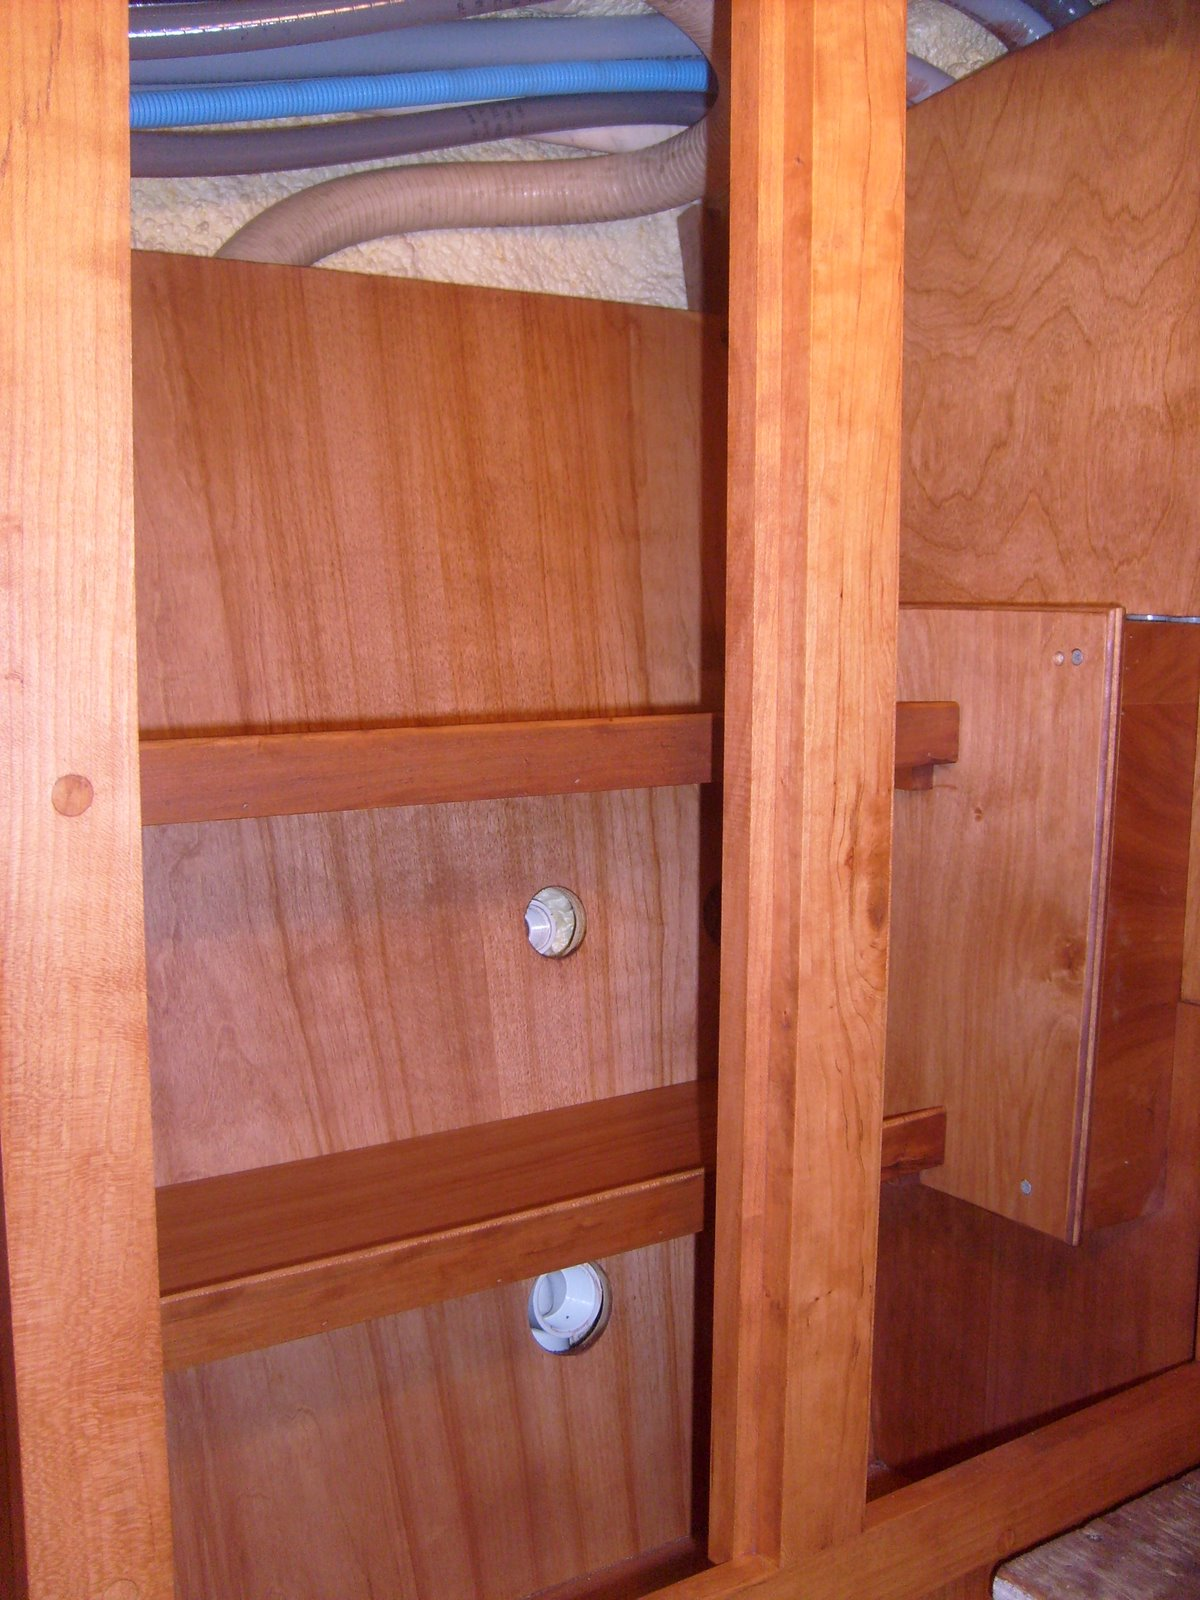 Kitchen Cabinet Doors Hull Conall 39s Boat Build September 2011